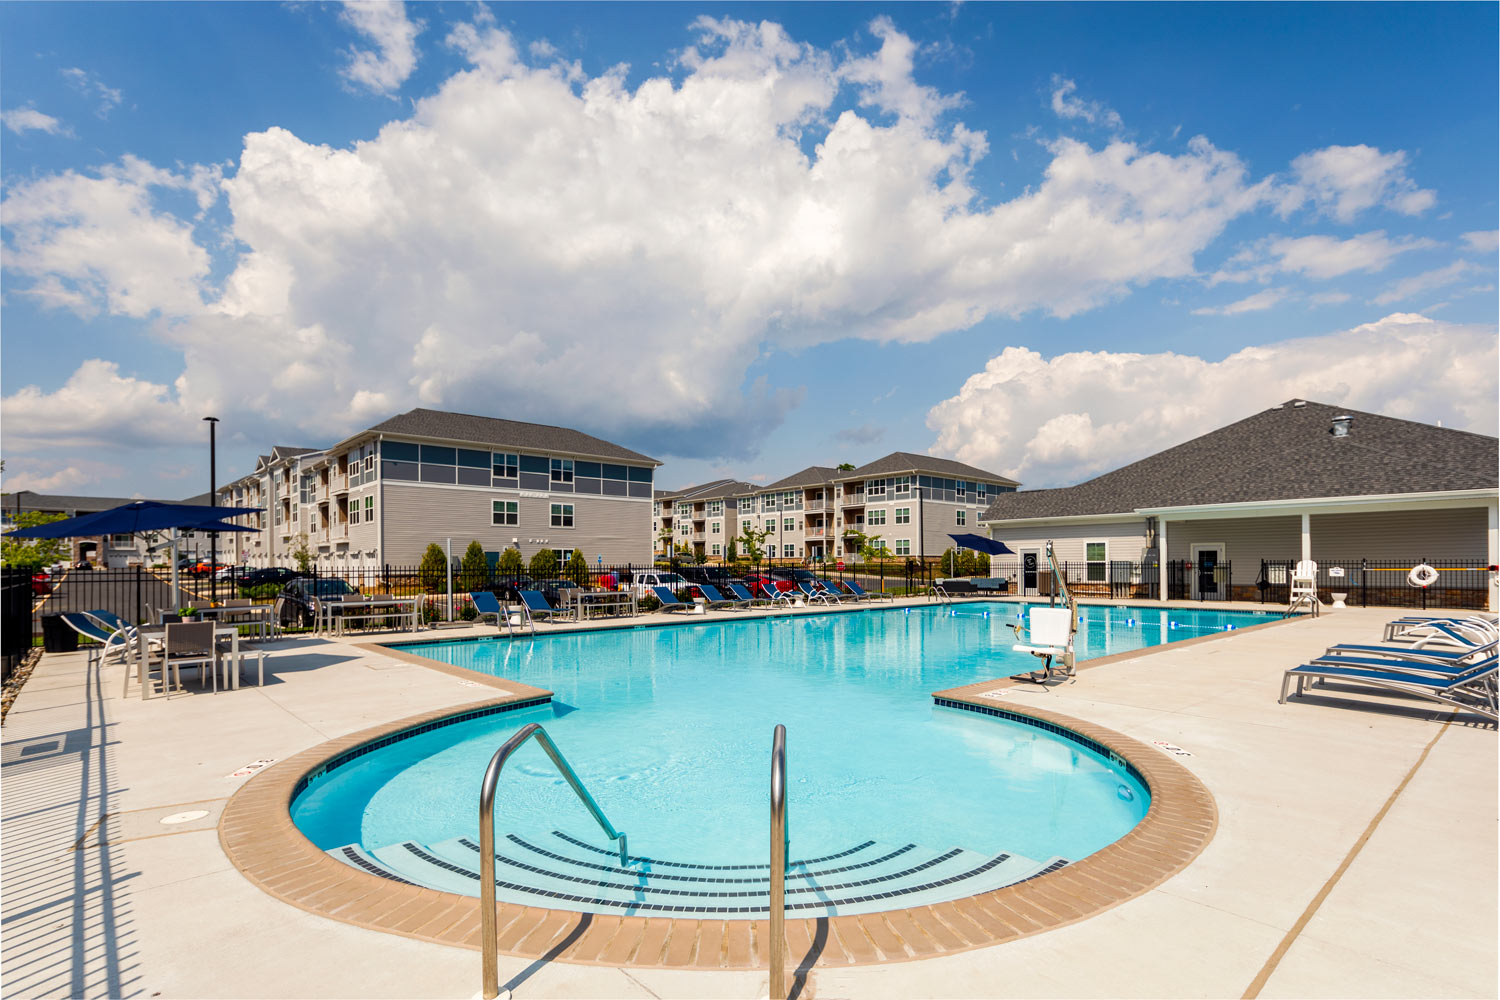 resort style pool, chaise lounge chairs, with apartment building in the background - newark de luxury apartments